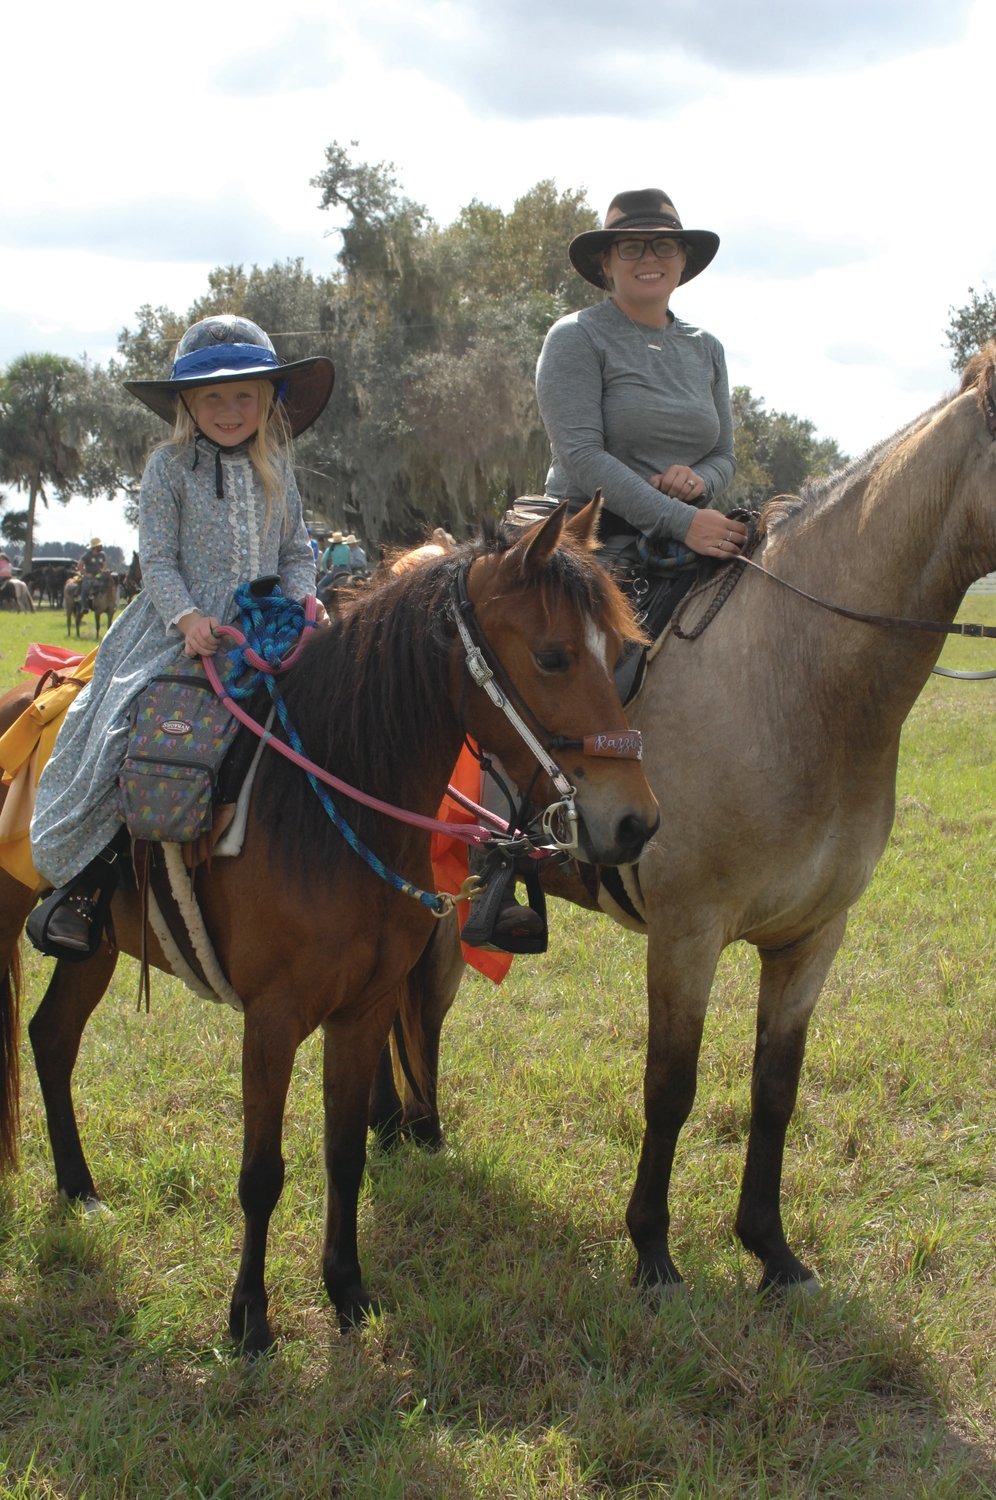 For some, the annual ride is a family affair and a chance for children to learn Florida history.